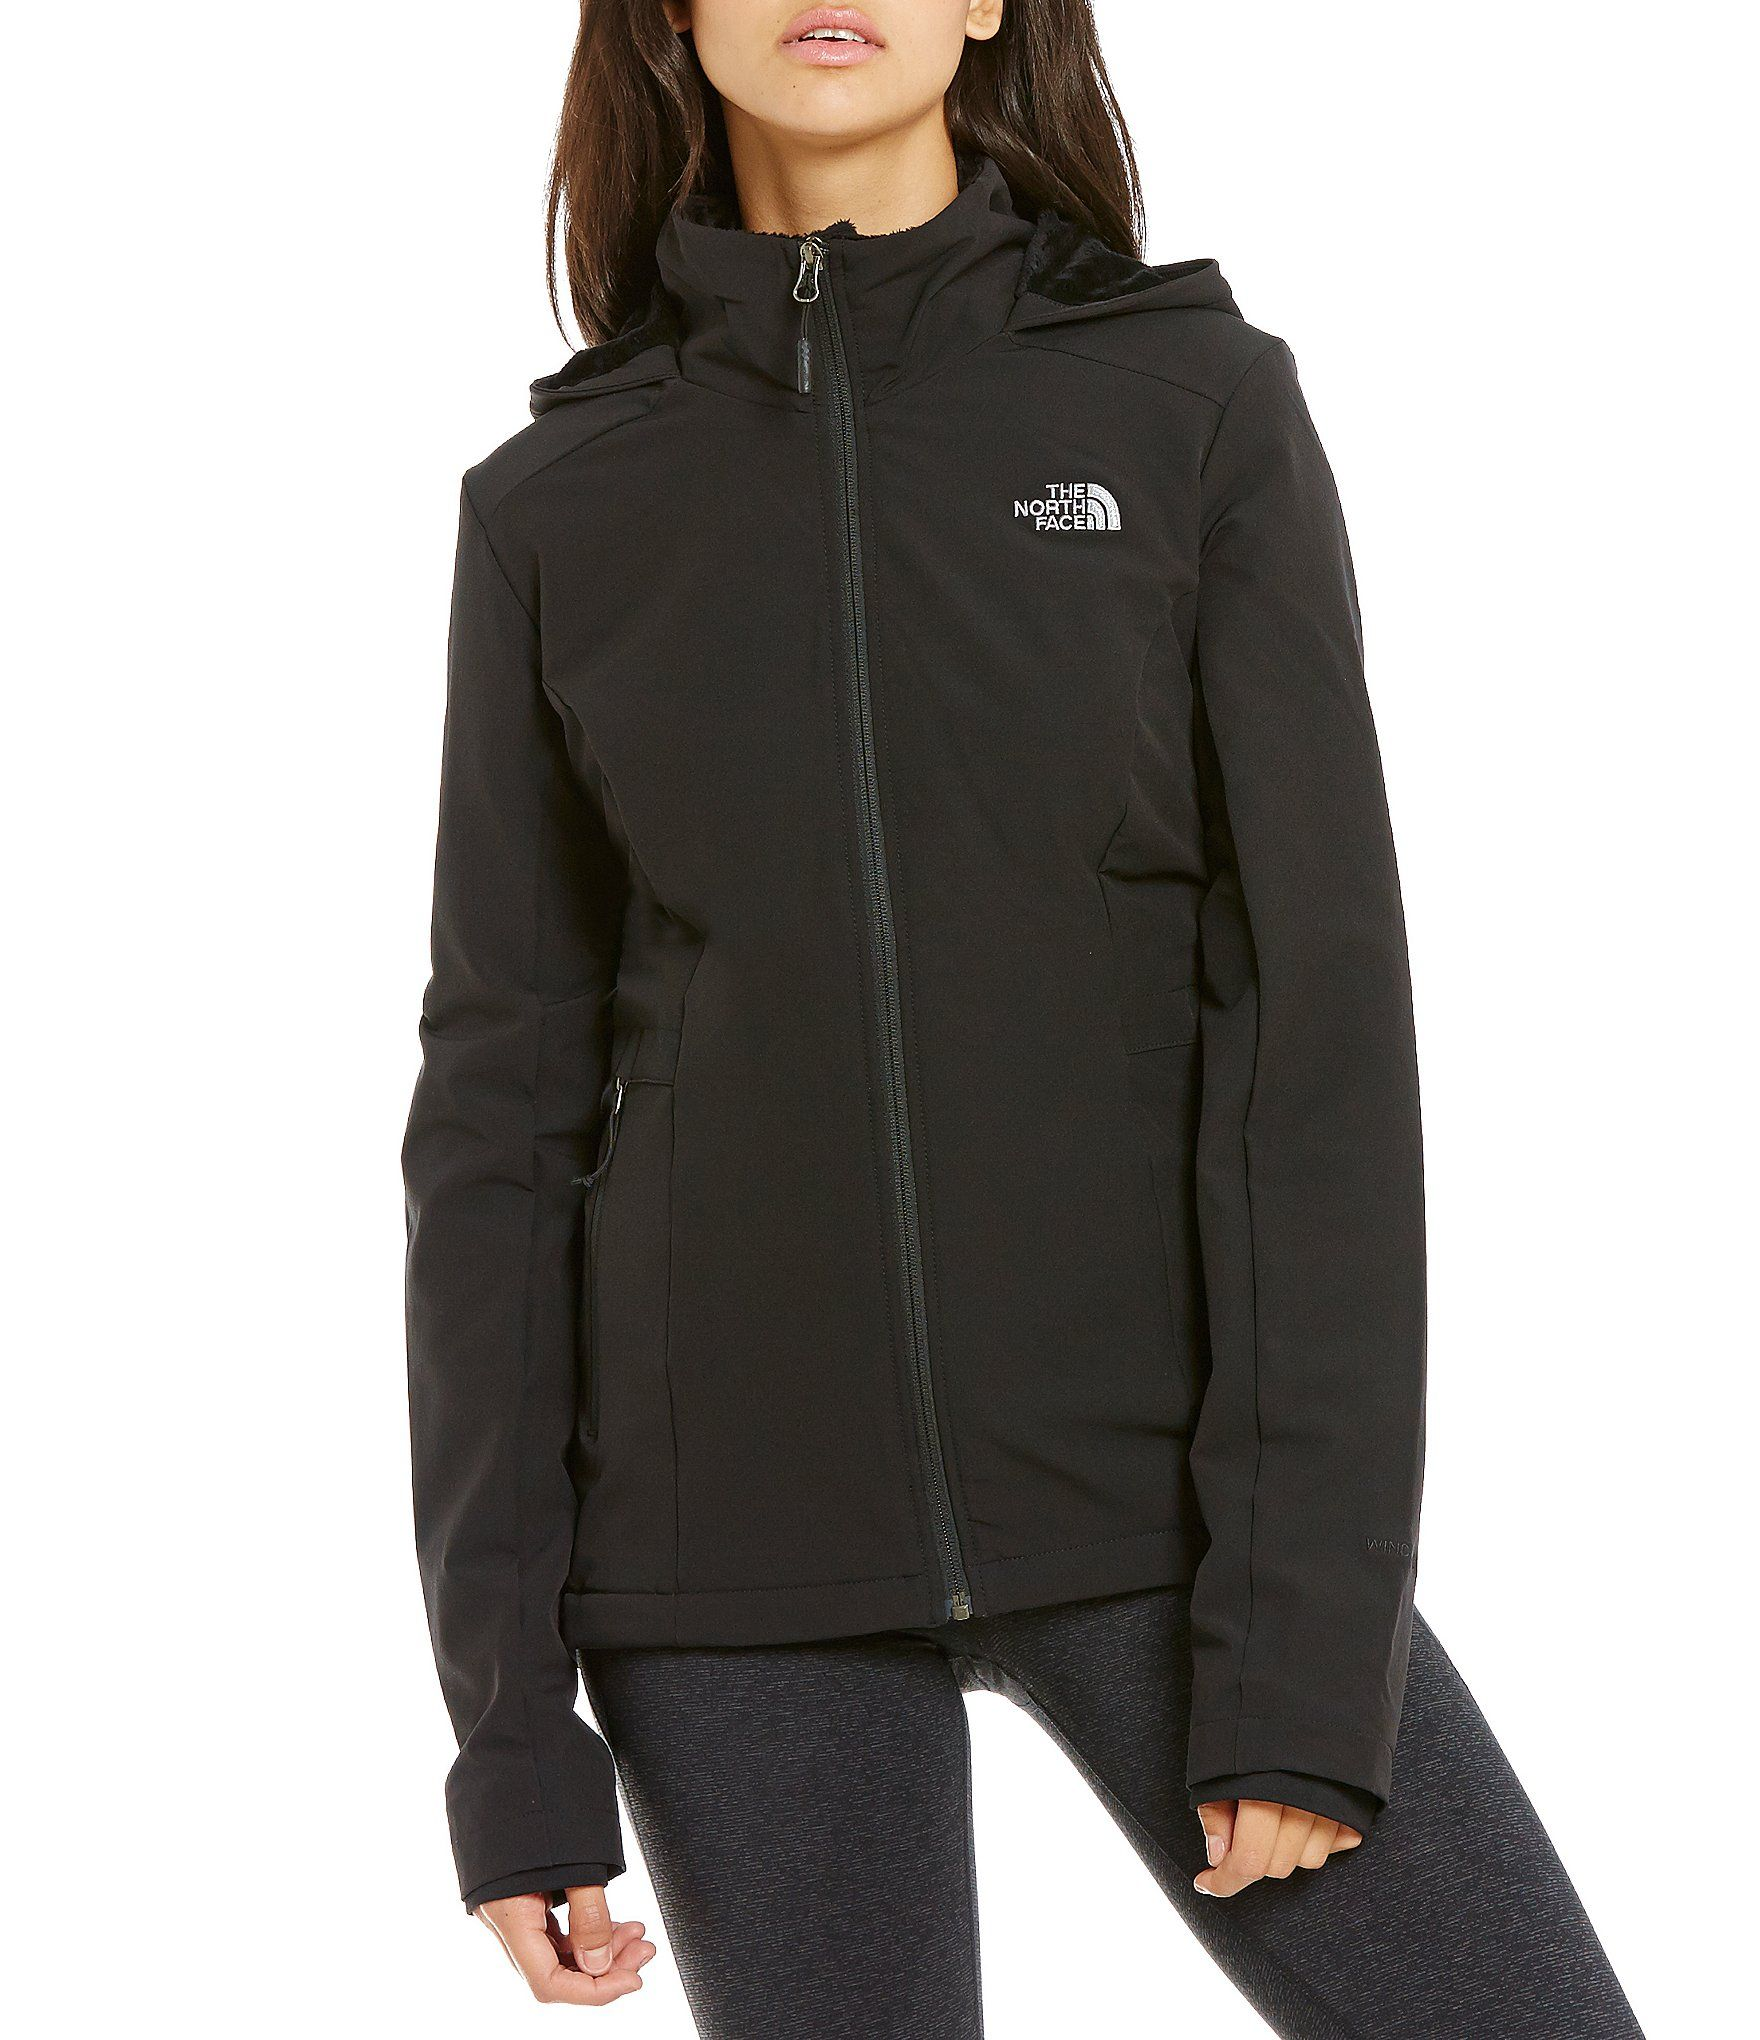 31 Awesome Womens North Face Jacket Smart Ideas Best Womens North Face Jacket For Winter La S North Face Quilted Jacket North Face Jeppeson Jacket Women S [ 2040 x 1760 Pixel ]